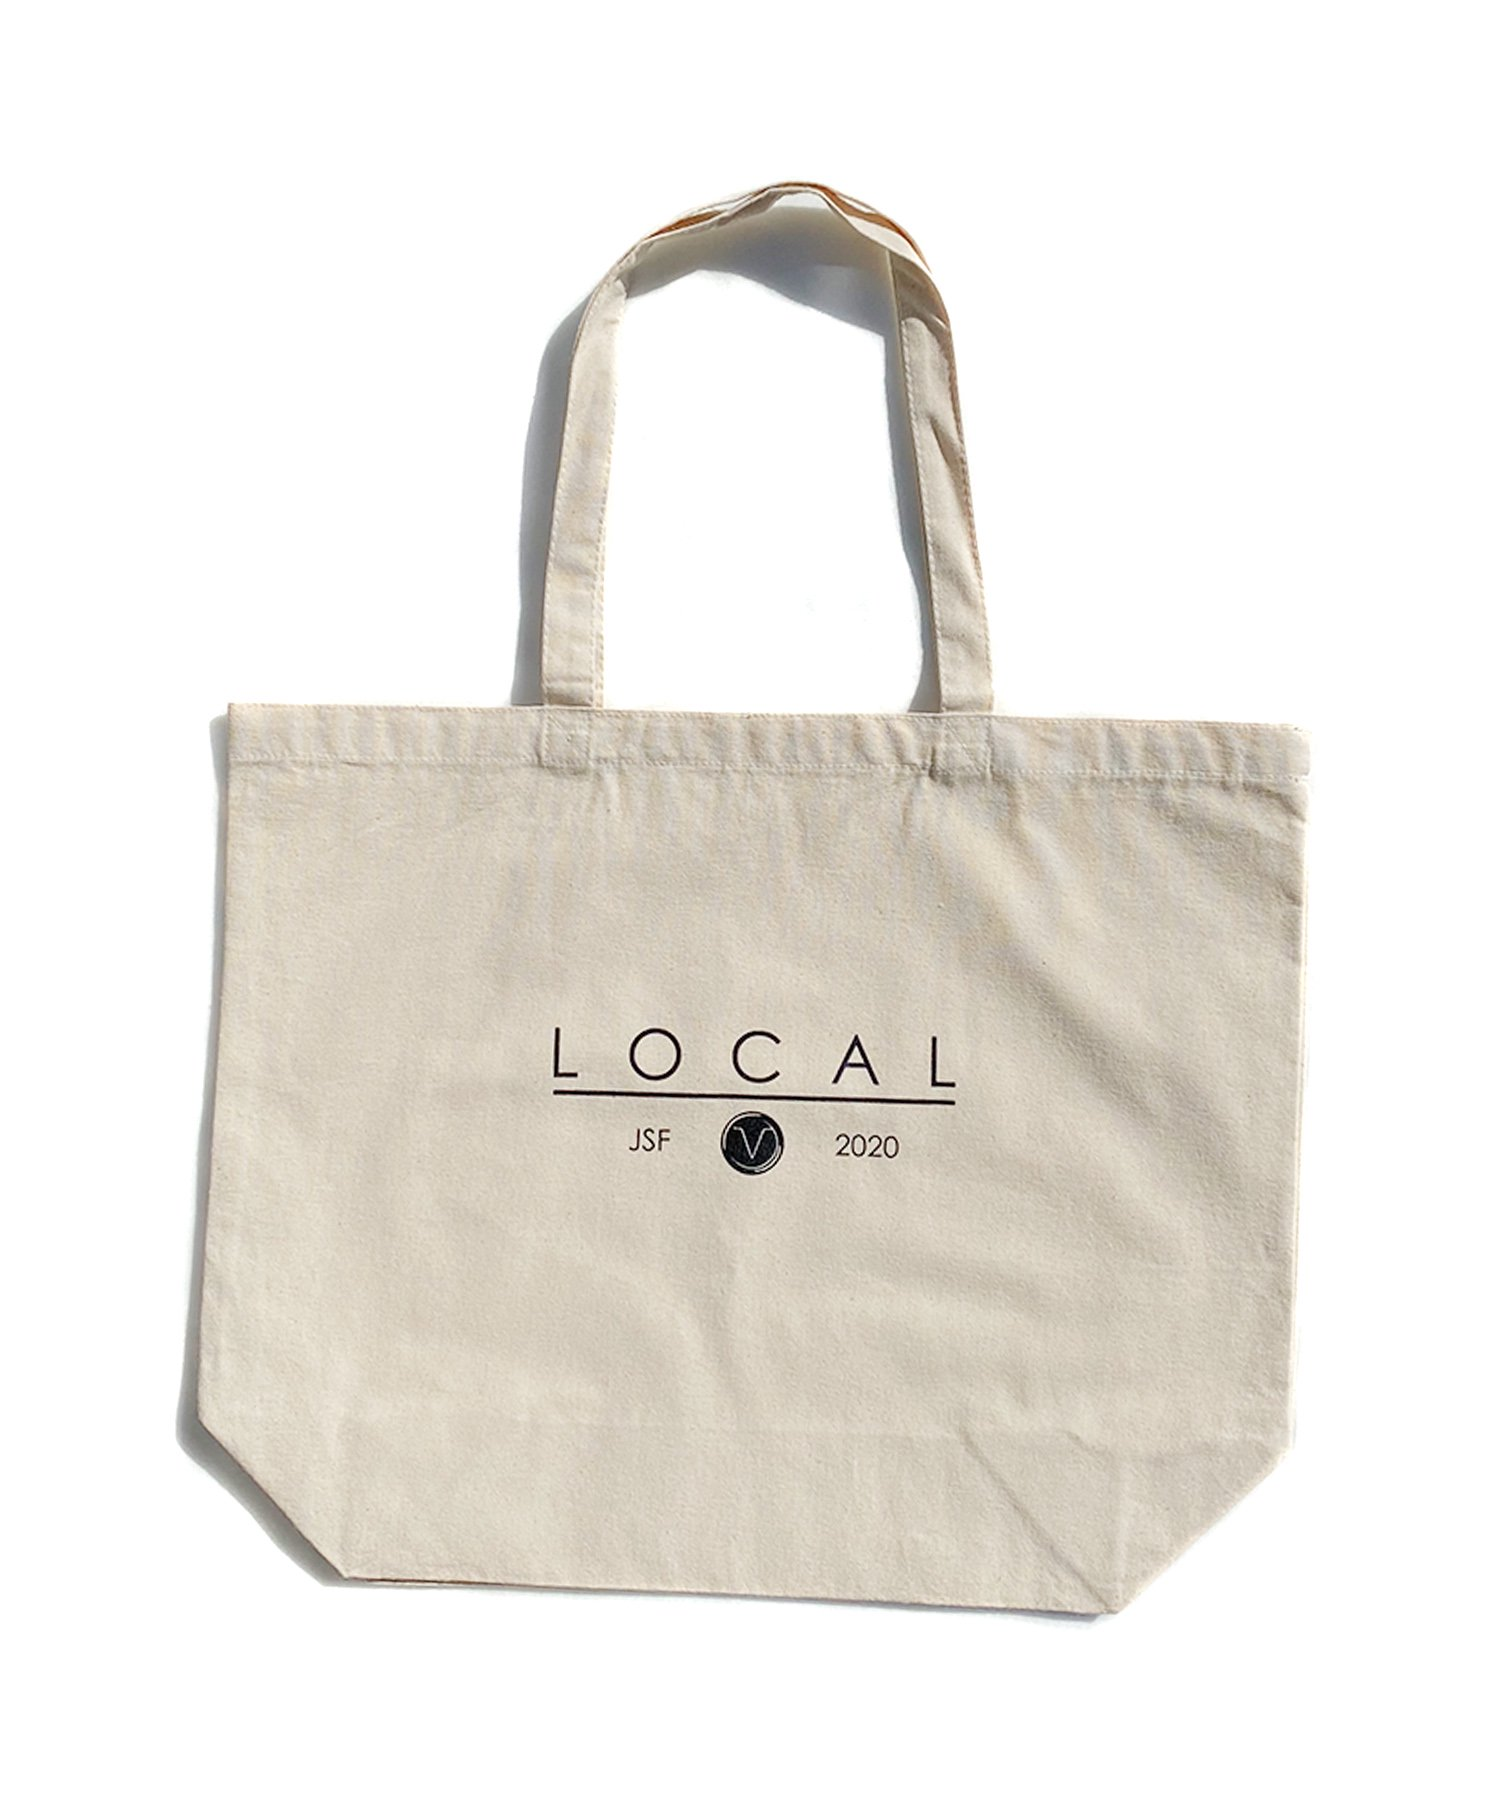 LOCAL TOTE BAG